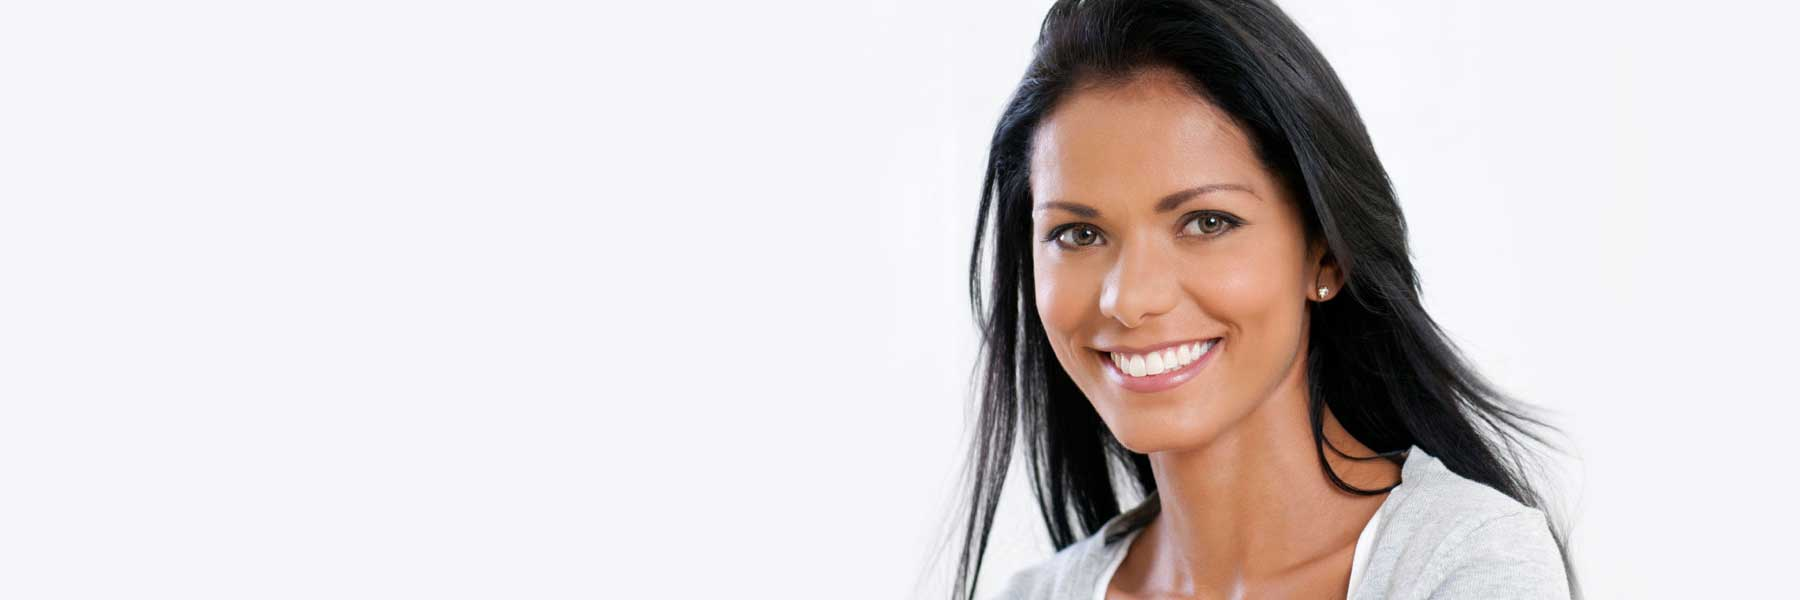 periodontal treatment | gum disease | vienna va